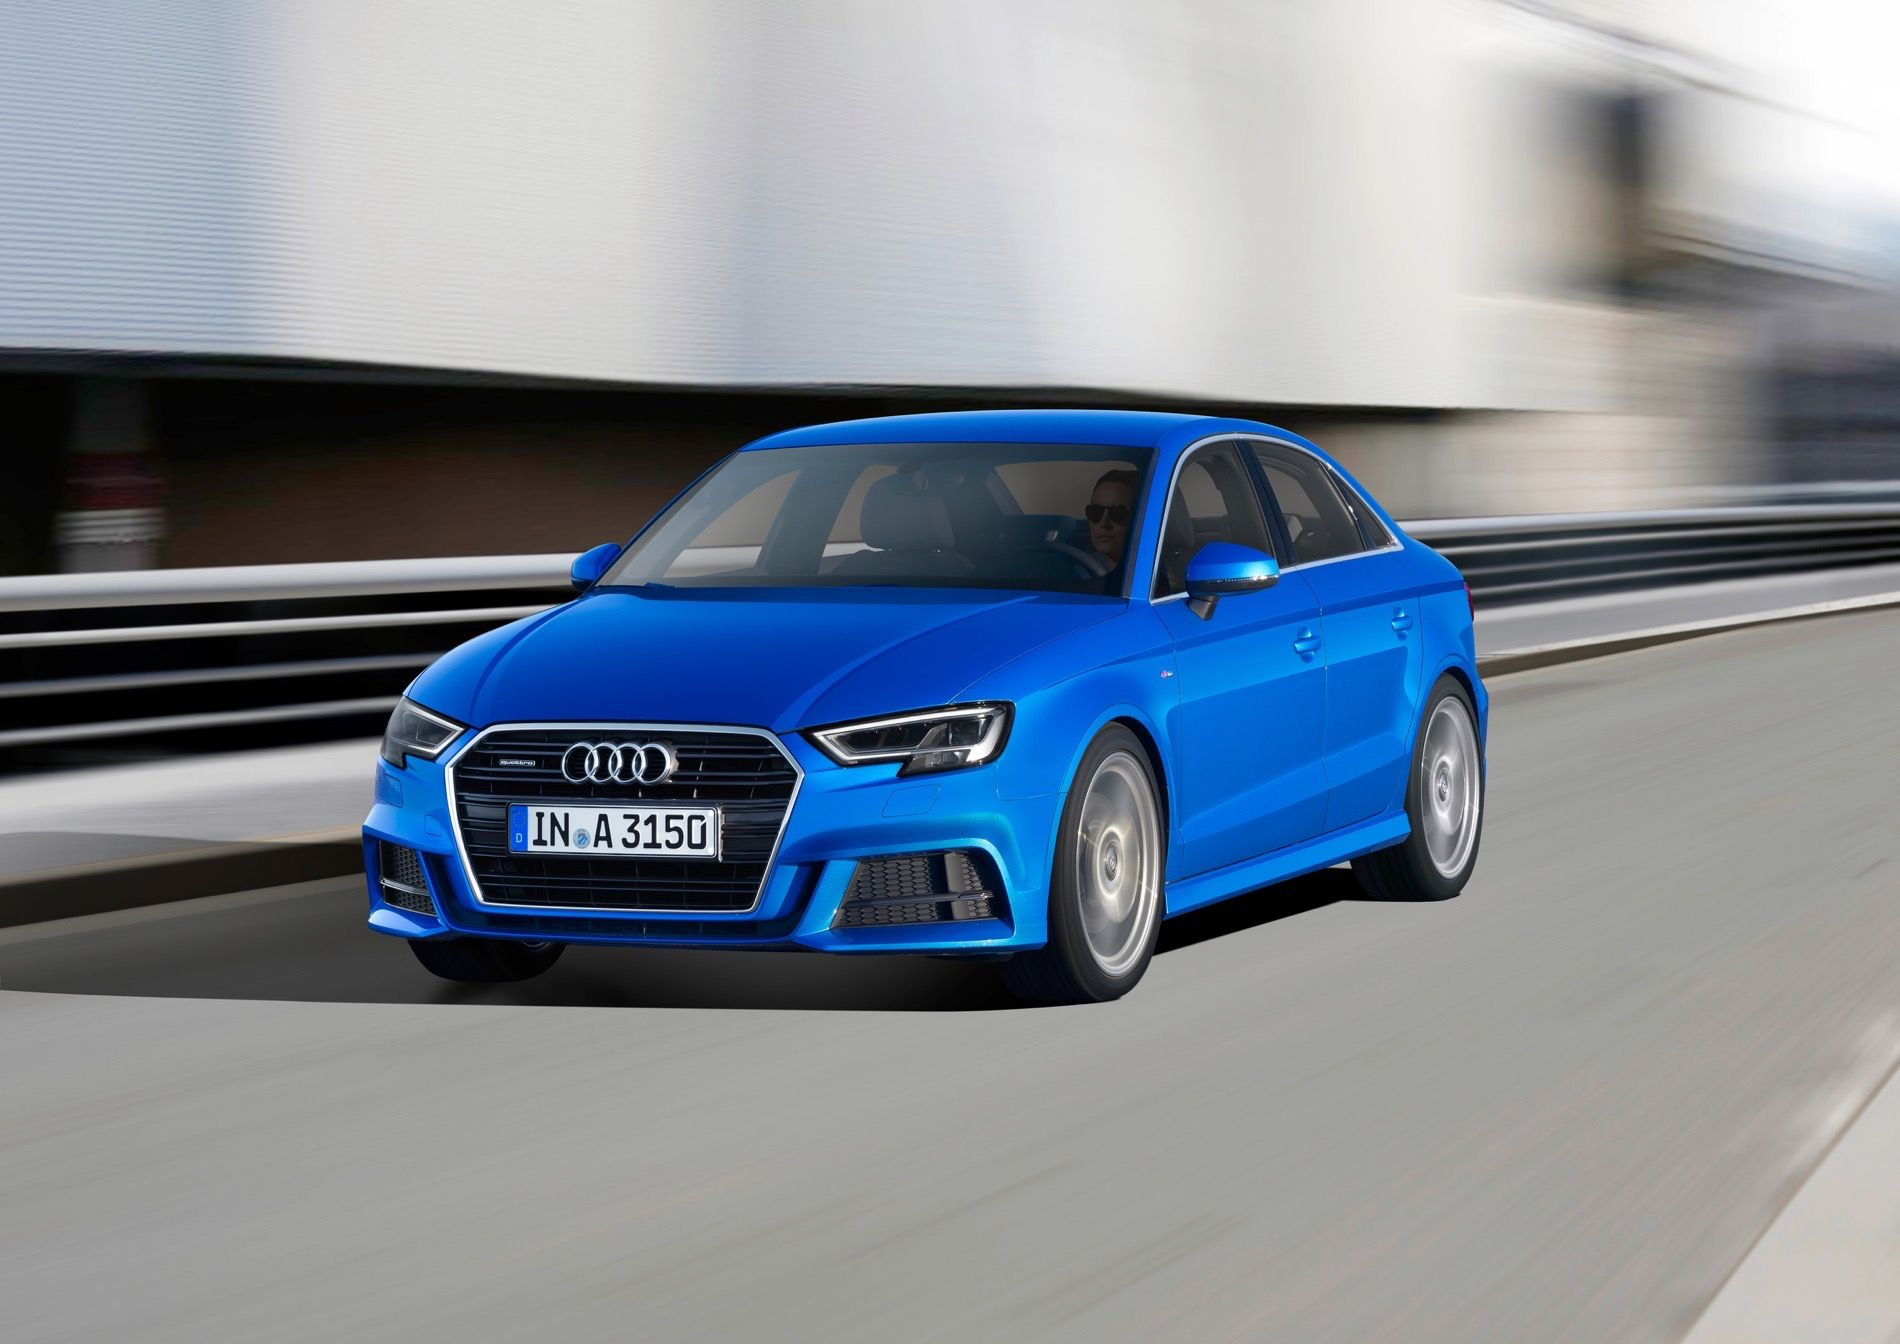 2017 Audi A3 ditches 1.8T for new 2.0T Audi a3 sportback